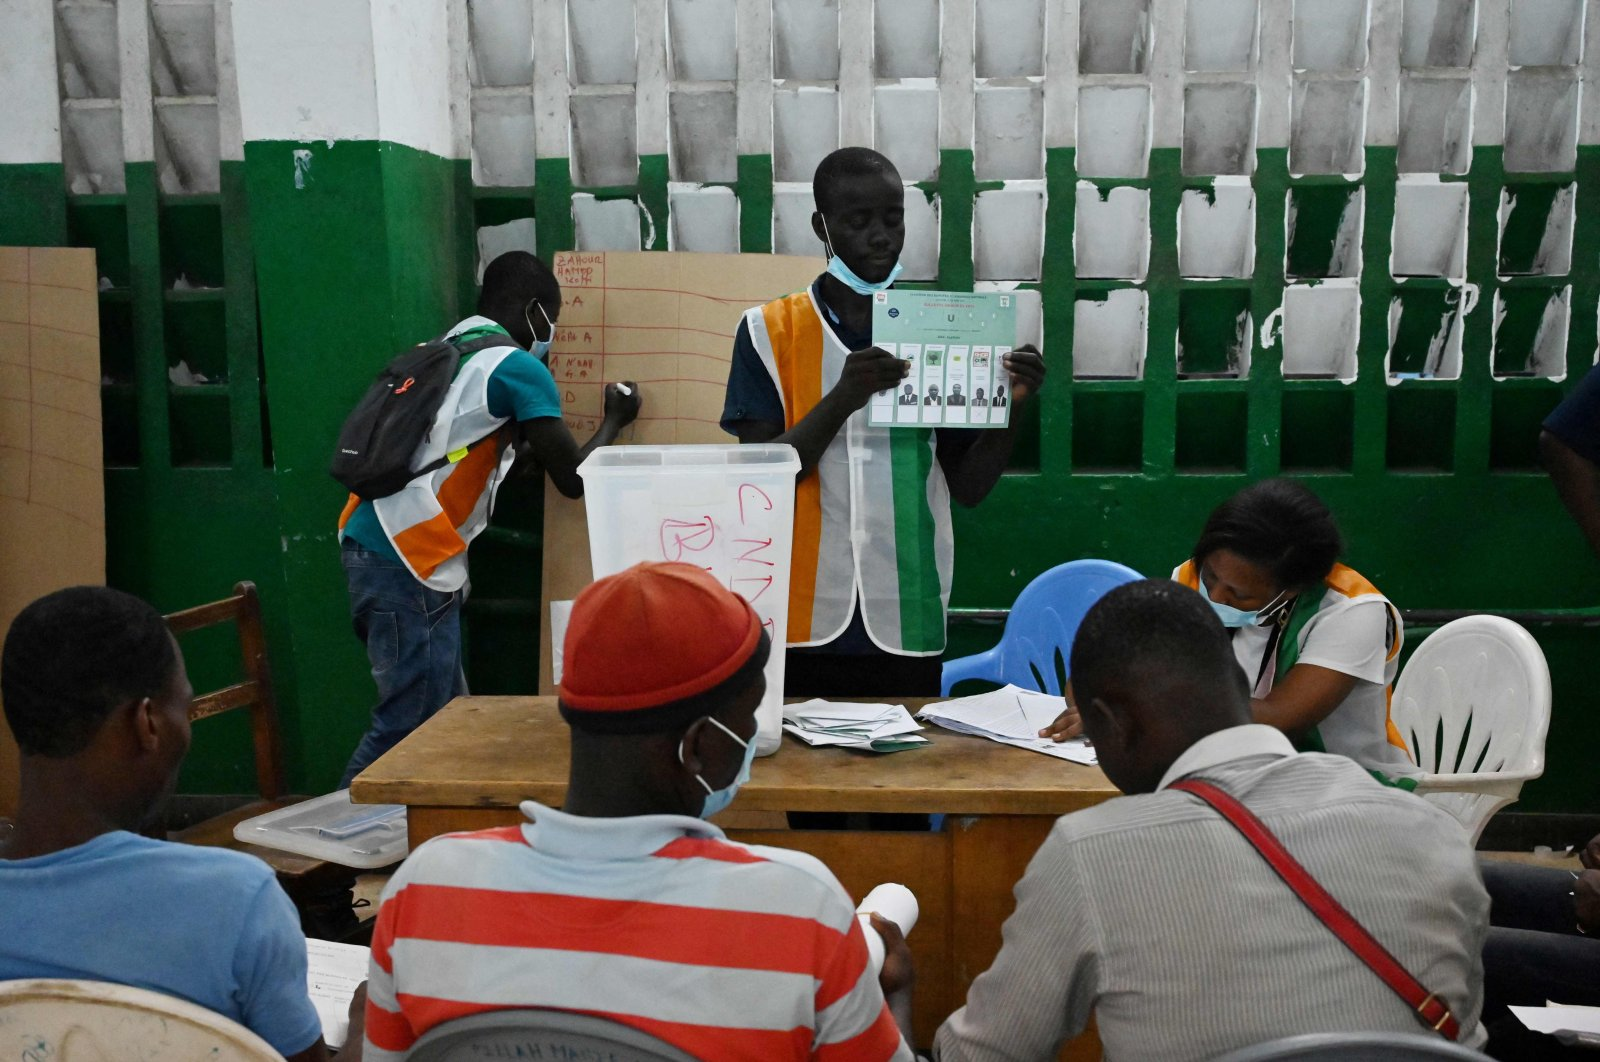 Workers of the Independent Electoral Commission (IEC) count the number of voters after the closure of the polling stations during the legislative elections, in Abidjan, on March 6, 2021. (AFP Photo)